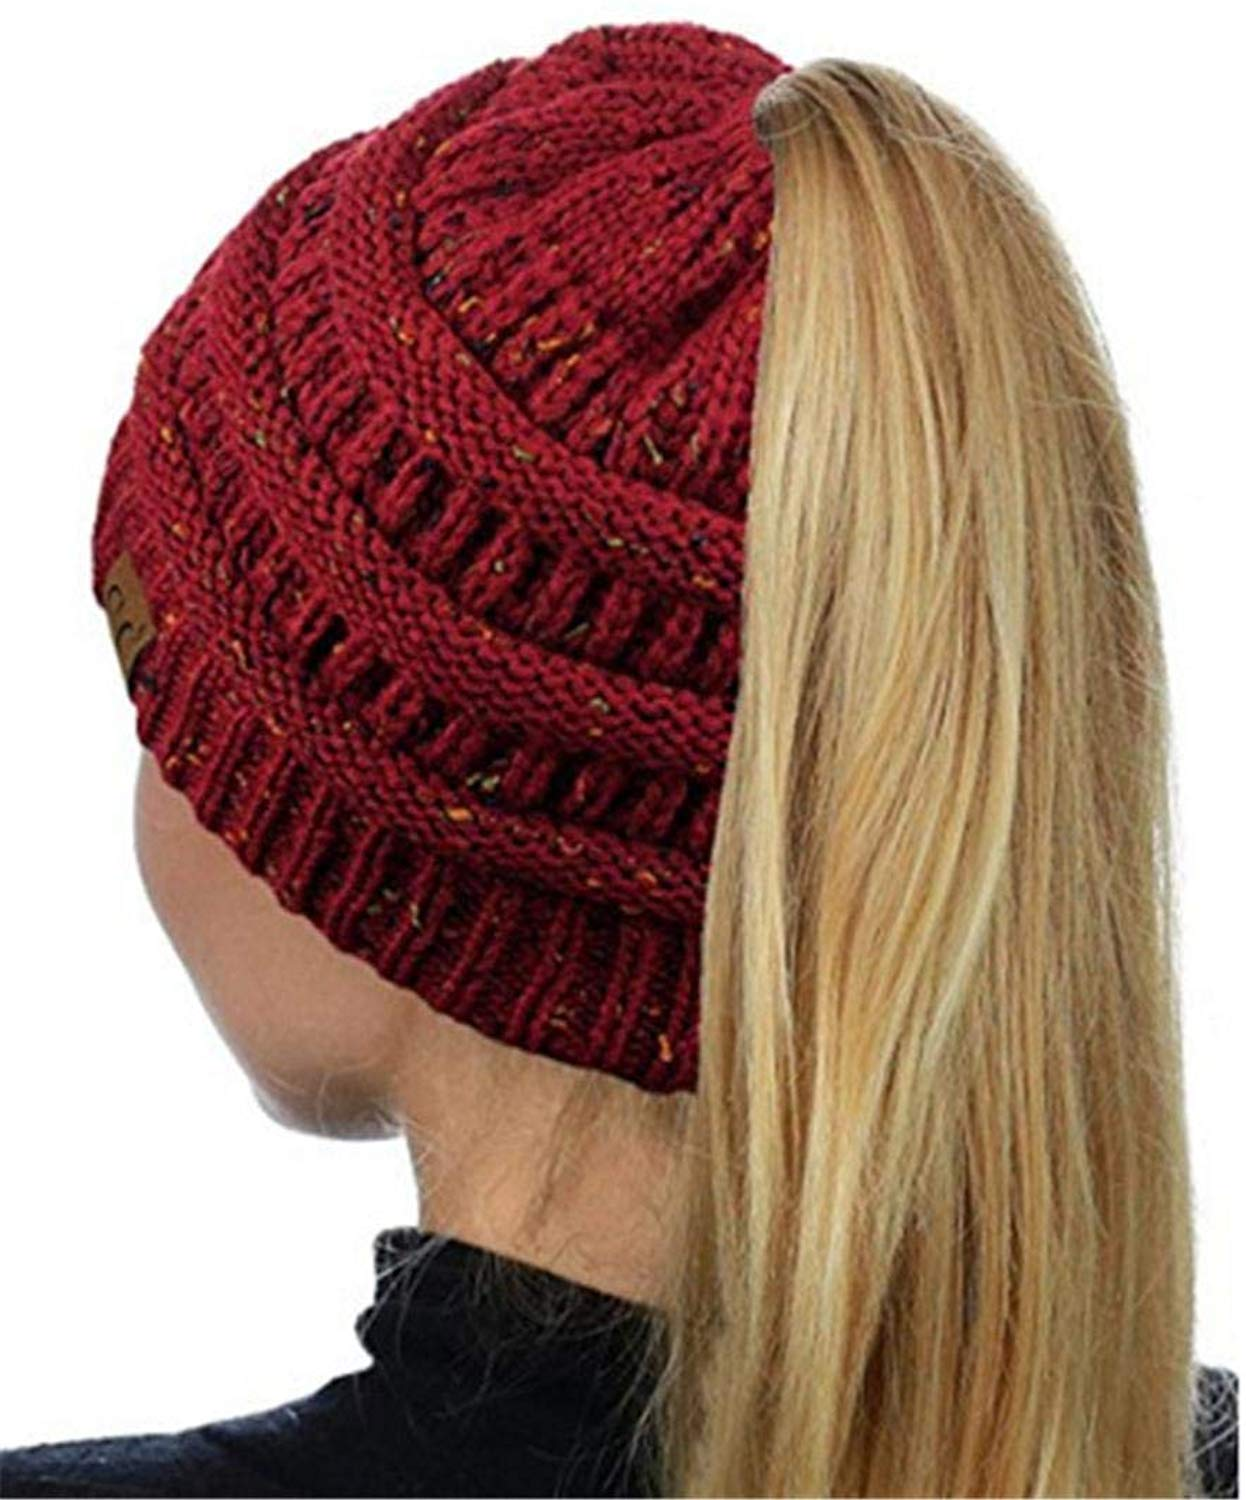 34ad91d1b97db Get Quotations · Aibiner- Accessories Womens Ponytail Beanie Hat Crochet Ponytail  Beanie Hat Winter Baggy Warm Wool Knit